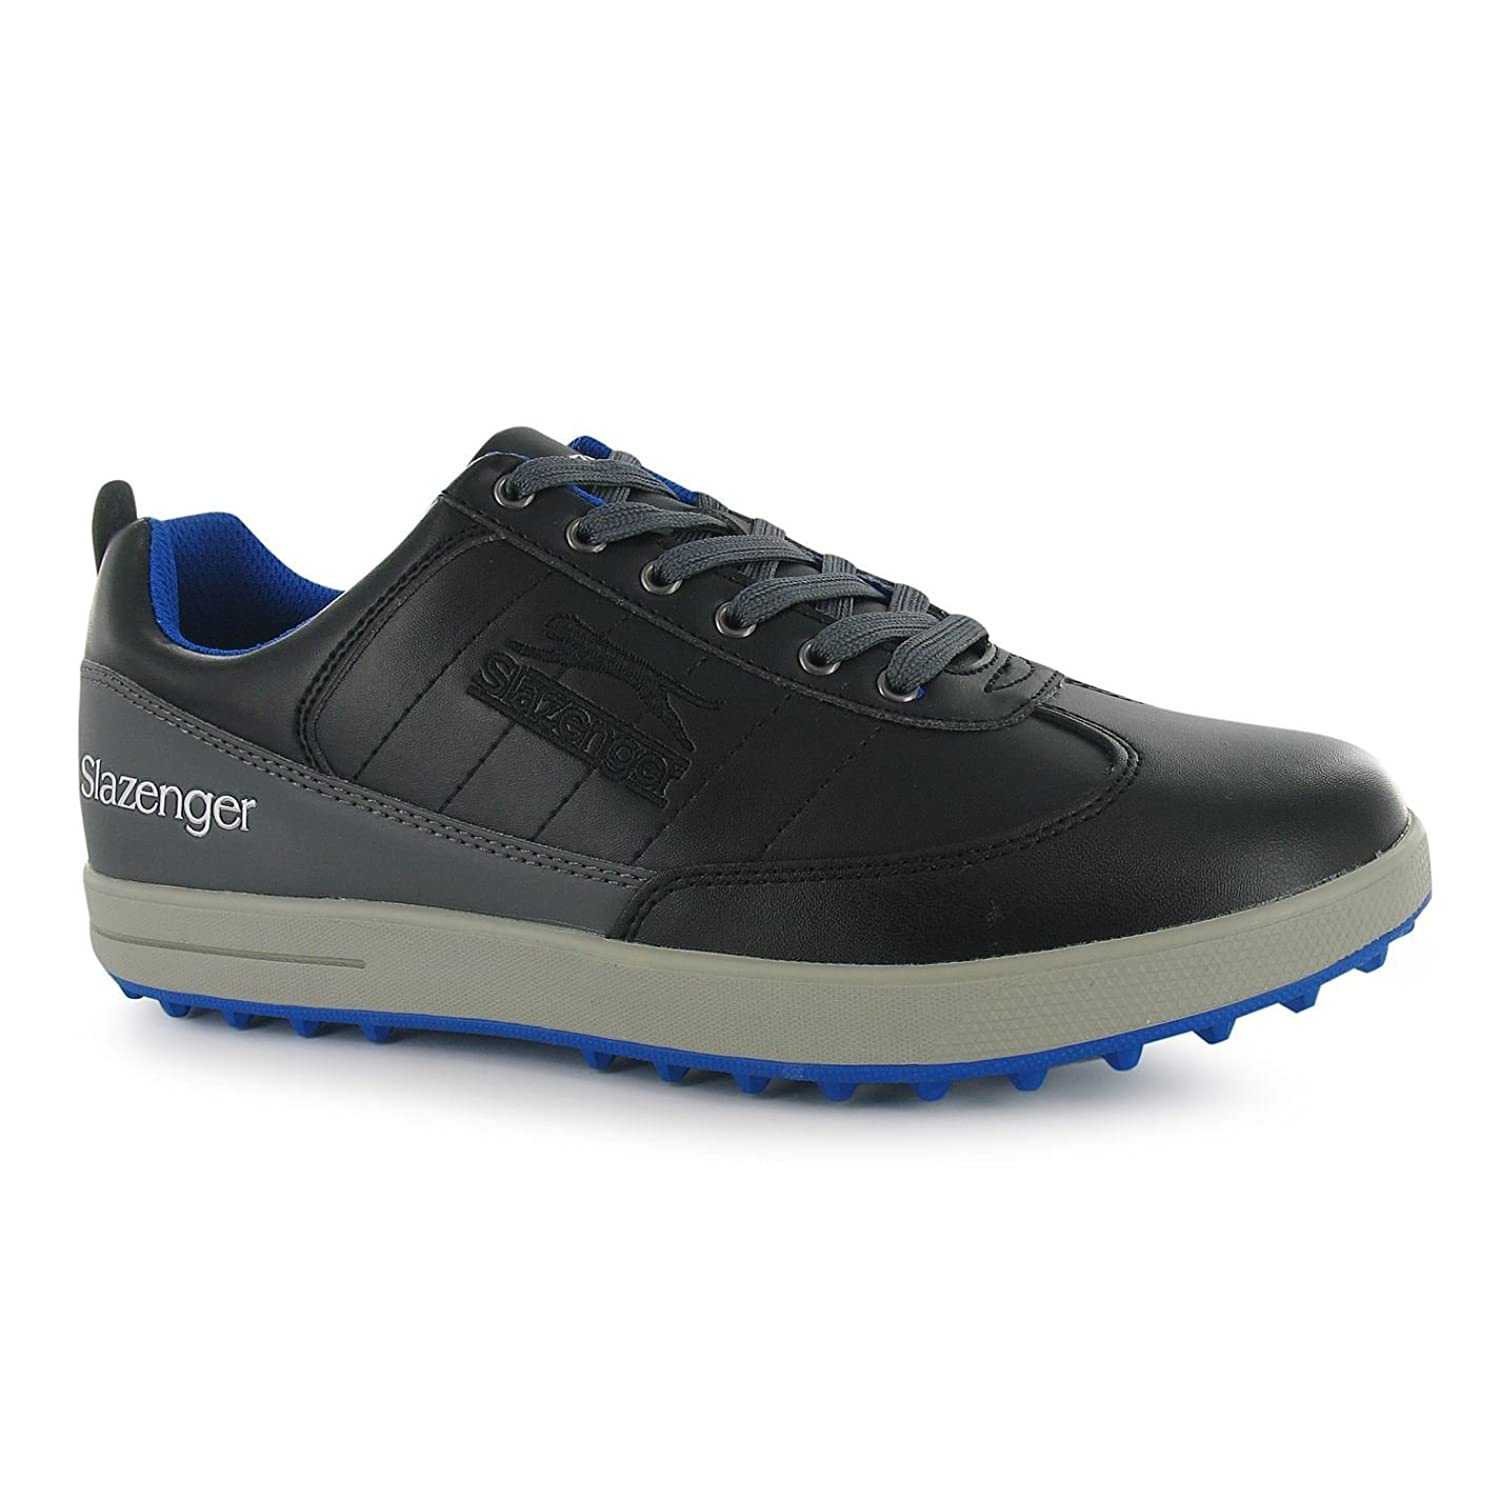 94b553495e17 Slazenger Mens Casual Golf Shoes Padded Collar Lace Up Sports Footwear  Black UK 10 (44